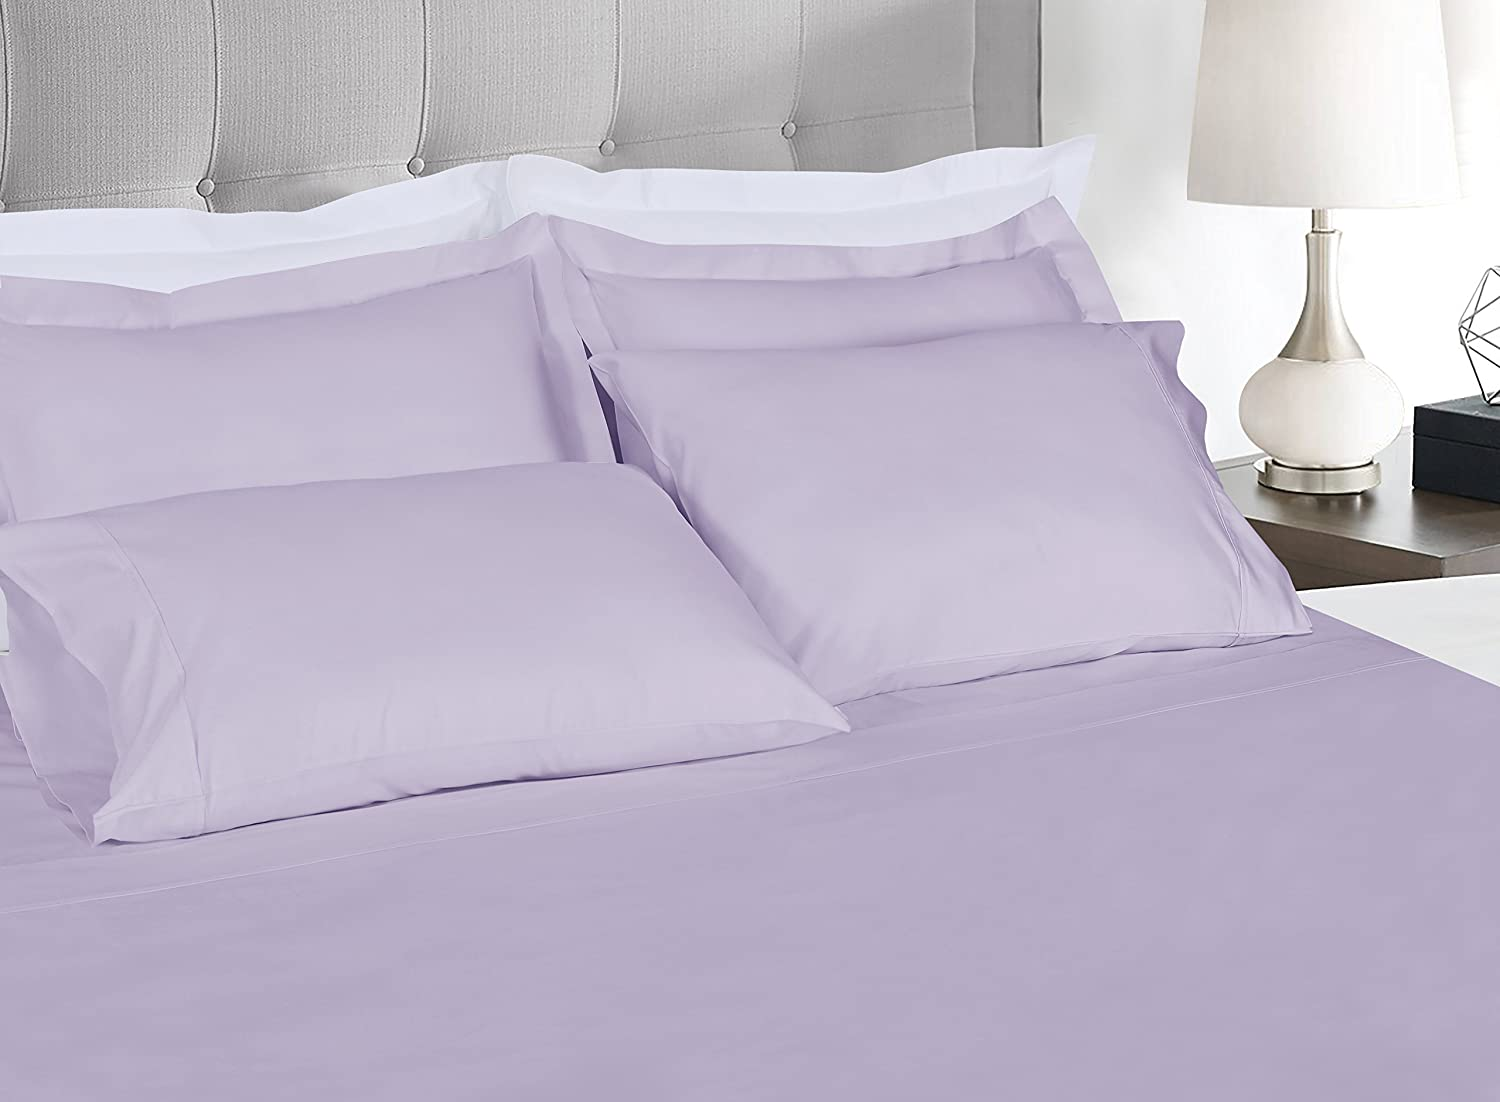 Threadmill Home Linen 300 Thread Count Bedding Collection 100% Long Staple Cotton Solid Sateen Sheet Set, Luxury Bedding, 4 Piece Set, Bed Sheets, Smooth Sateen Weave, Queen, Lilac